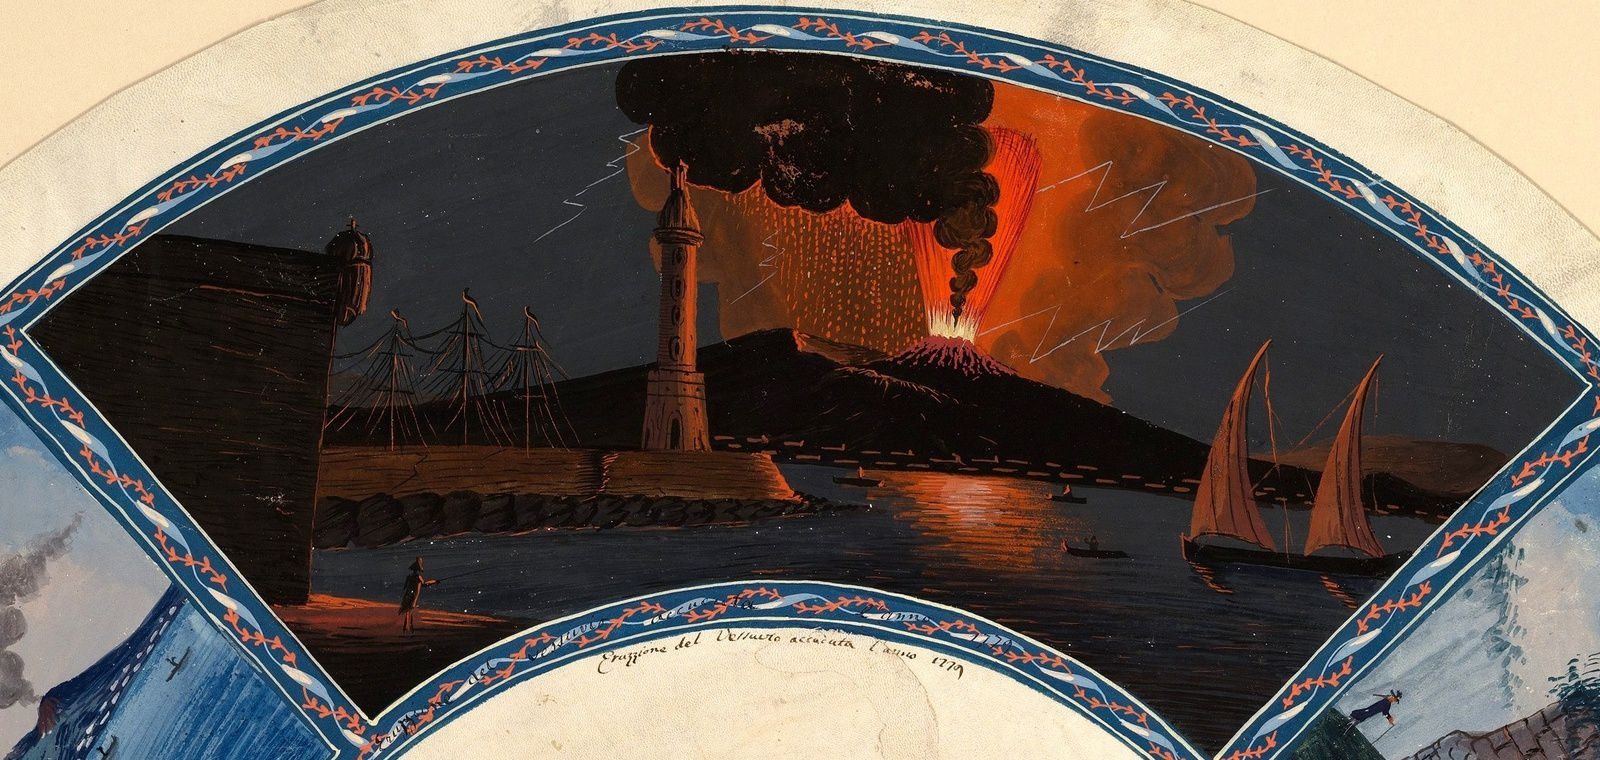 Watercolor on vellum illustrating a range / detail of the image above (one click to see full screen) - Vesuvius eruption in 1779 - anonymous writer - Harris Brisbane Dick Fund, 1938 / Metropolitan Museum of Art NY